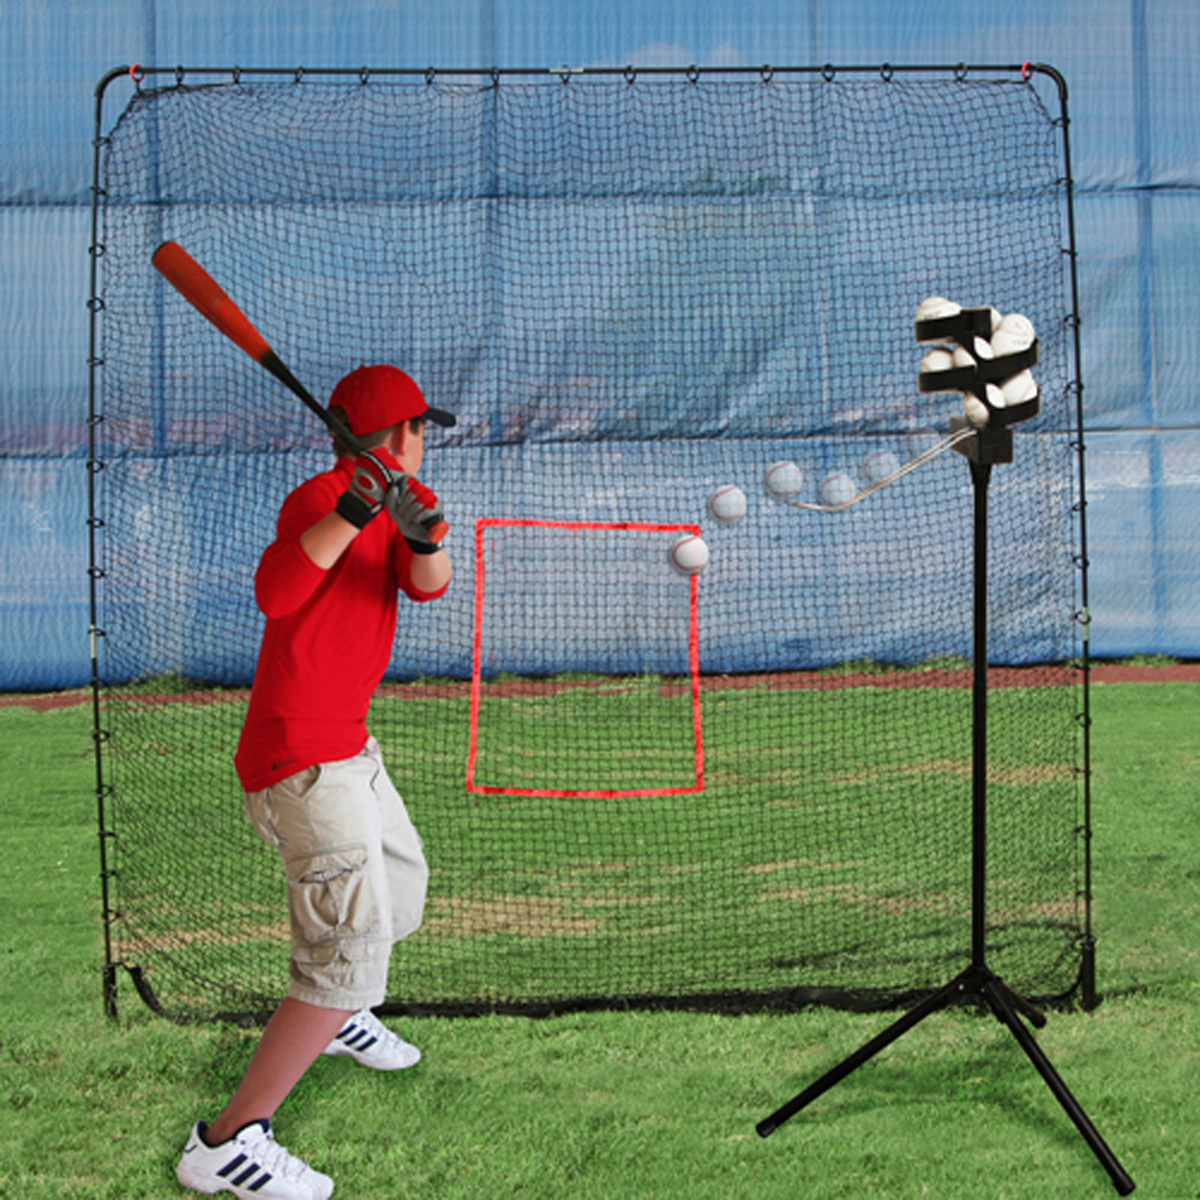 pitching machine net